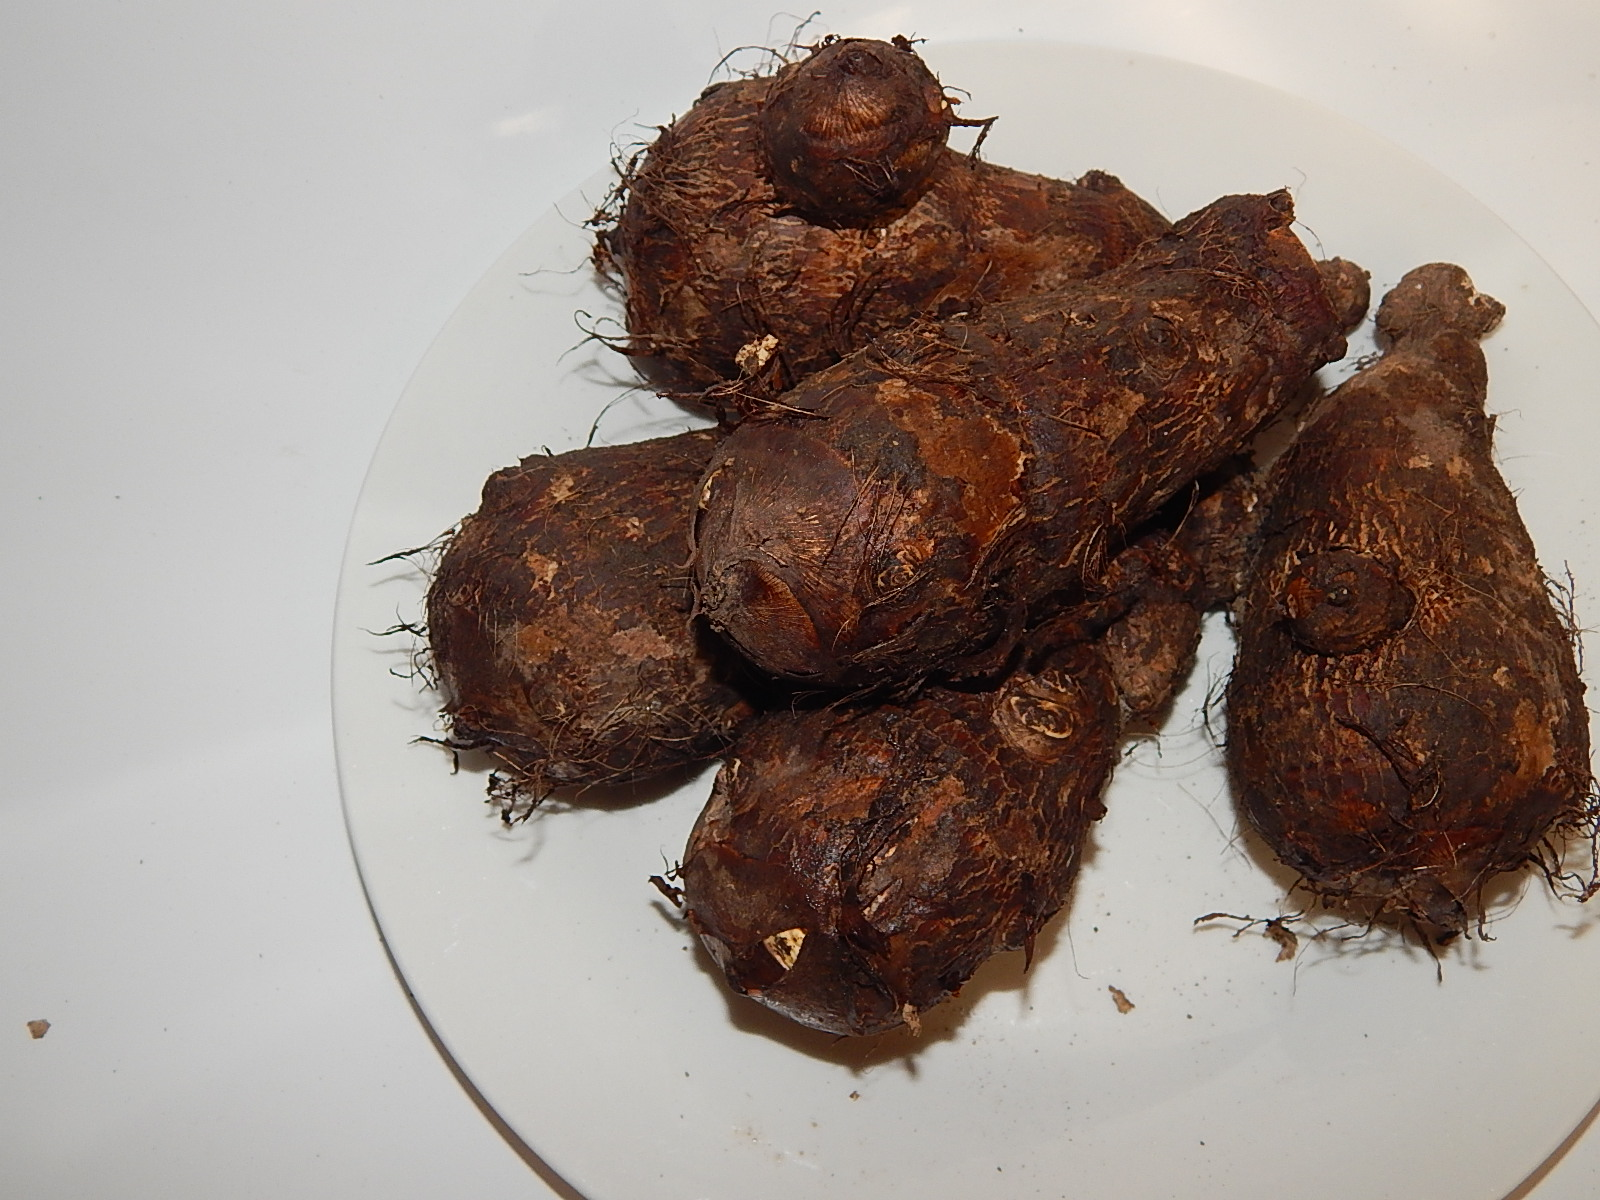 Large cocoyam which are yam like unlike the one used as a soup thickner